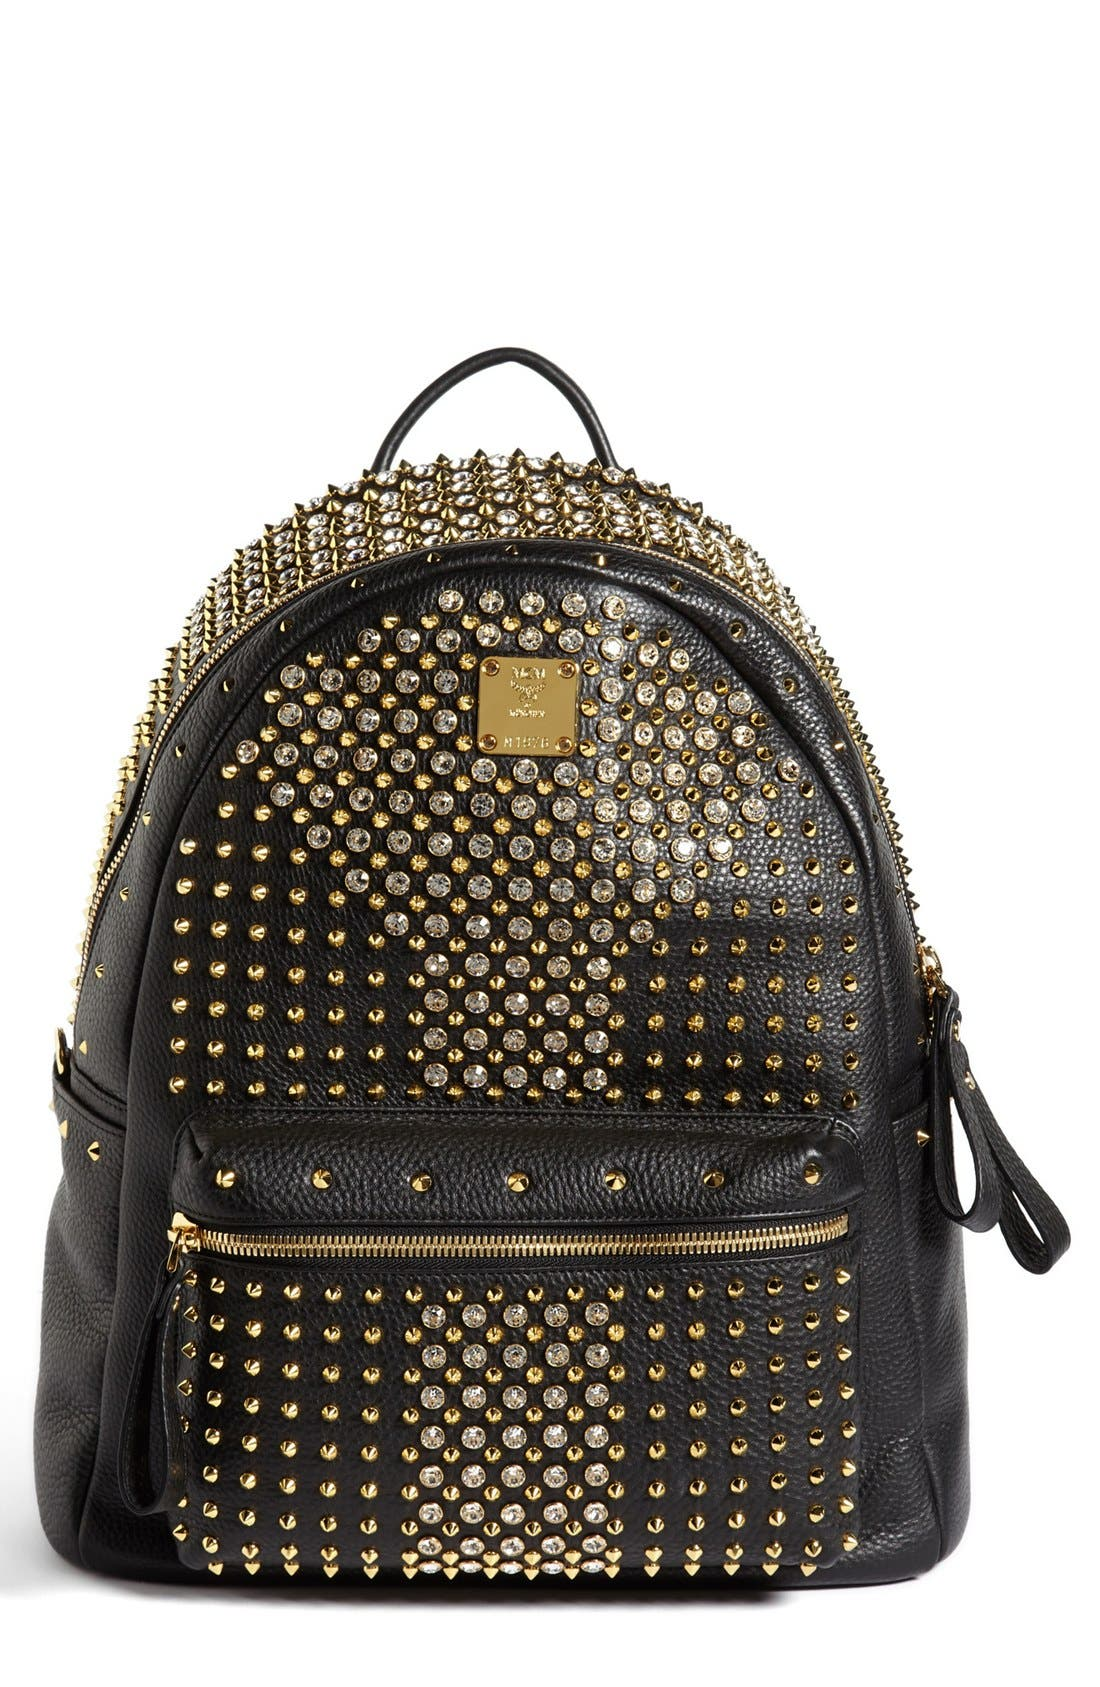 Alternate Image 1 Selected - MCM 'Crystal Studded - Medium' Leather Backpack